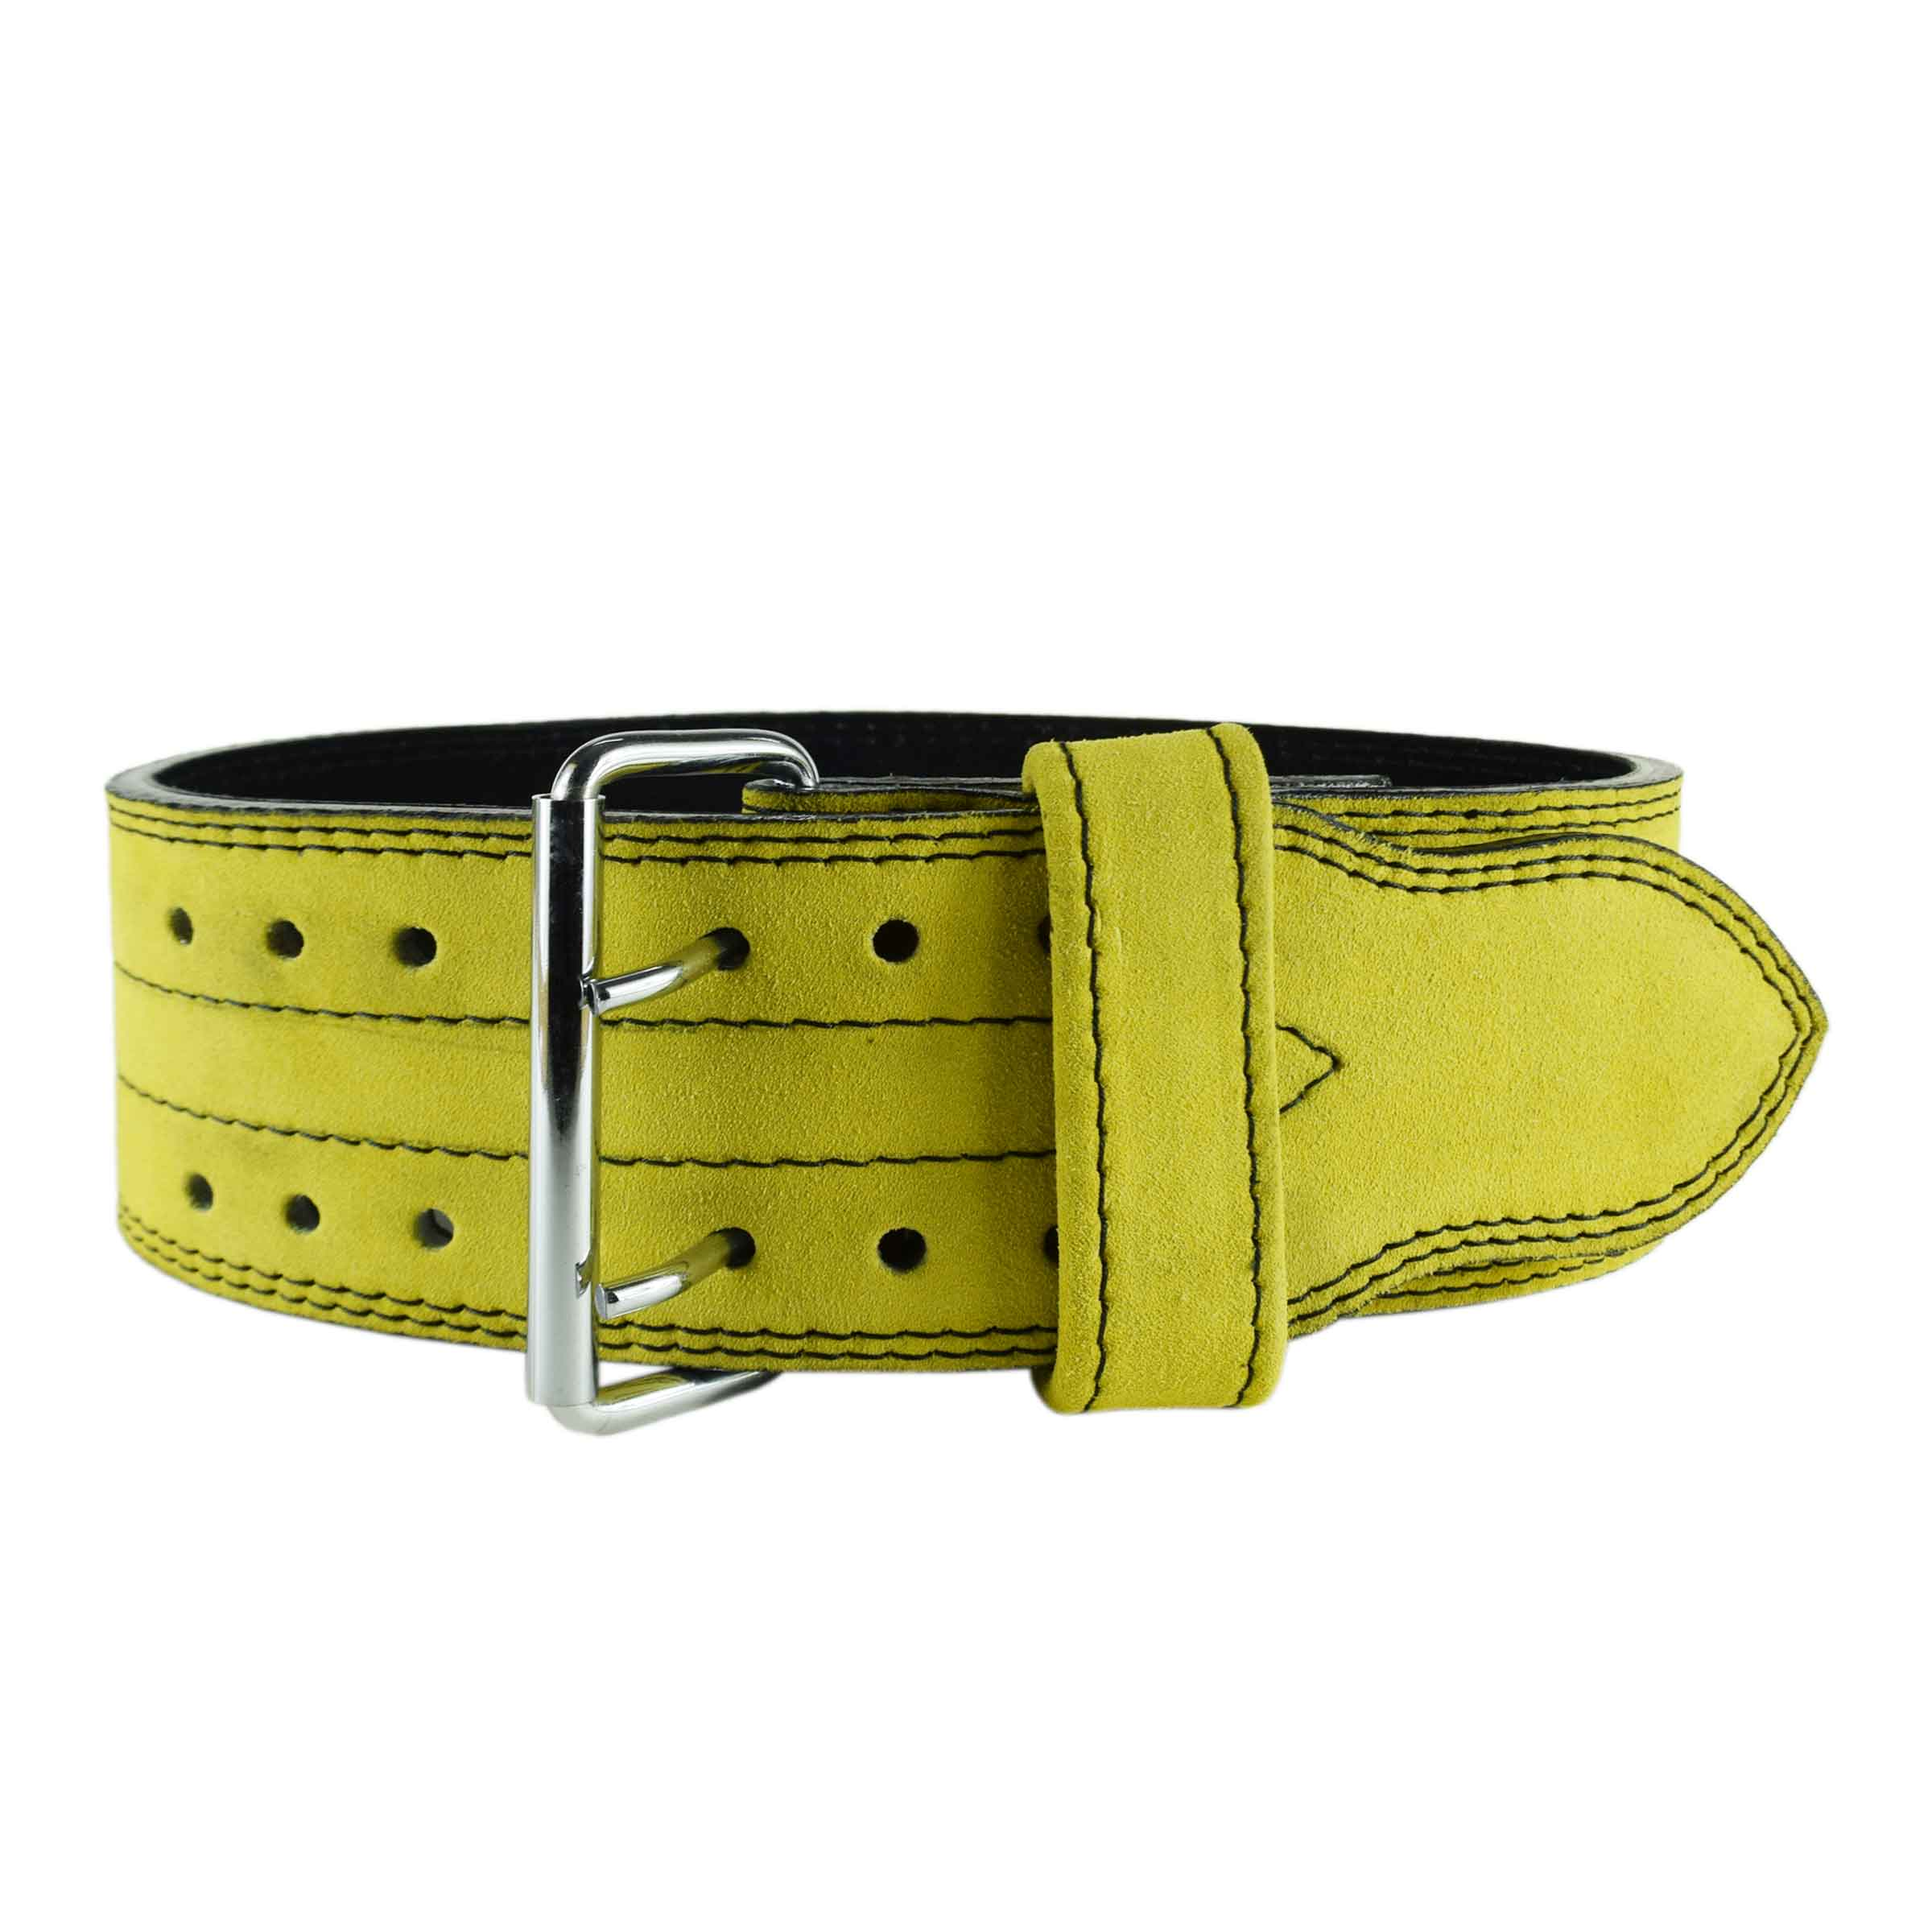 YELLOW WEIGHTLIFTING BELT